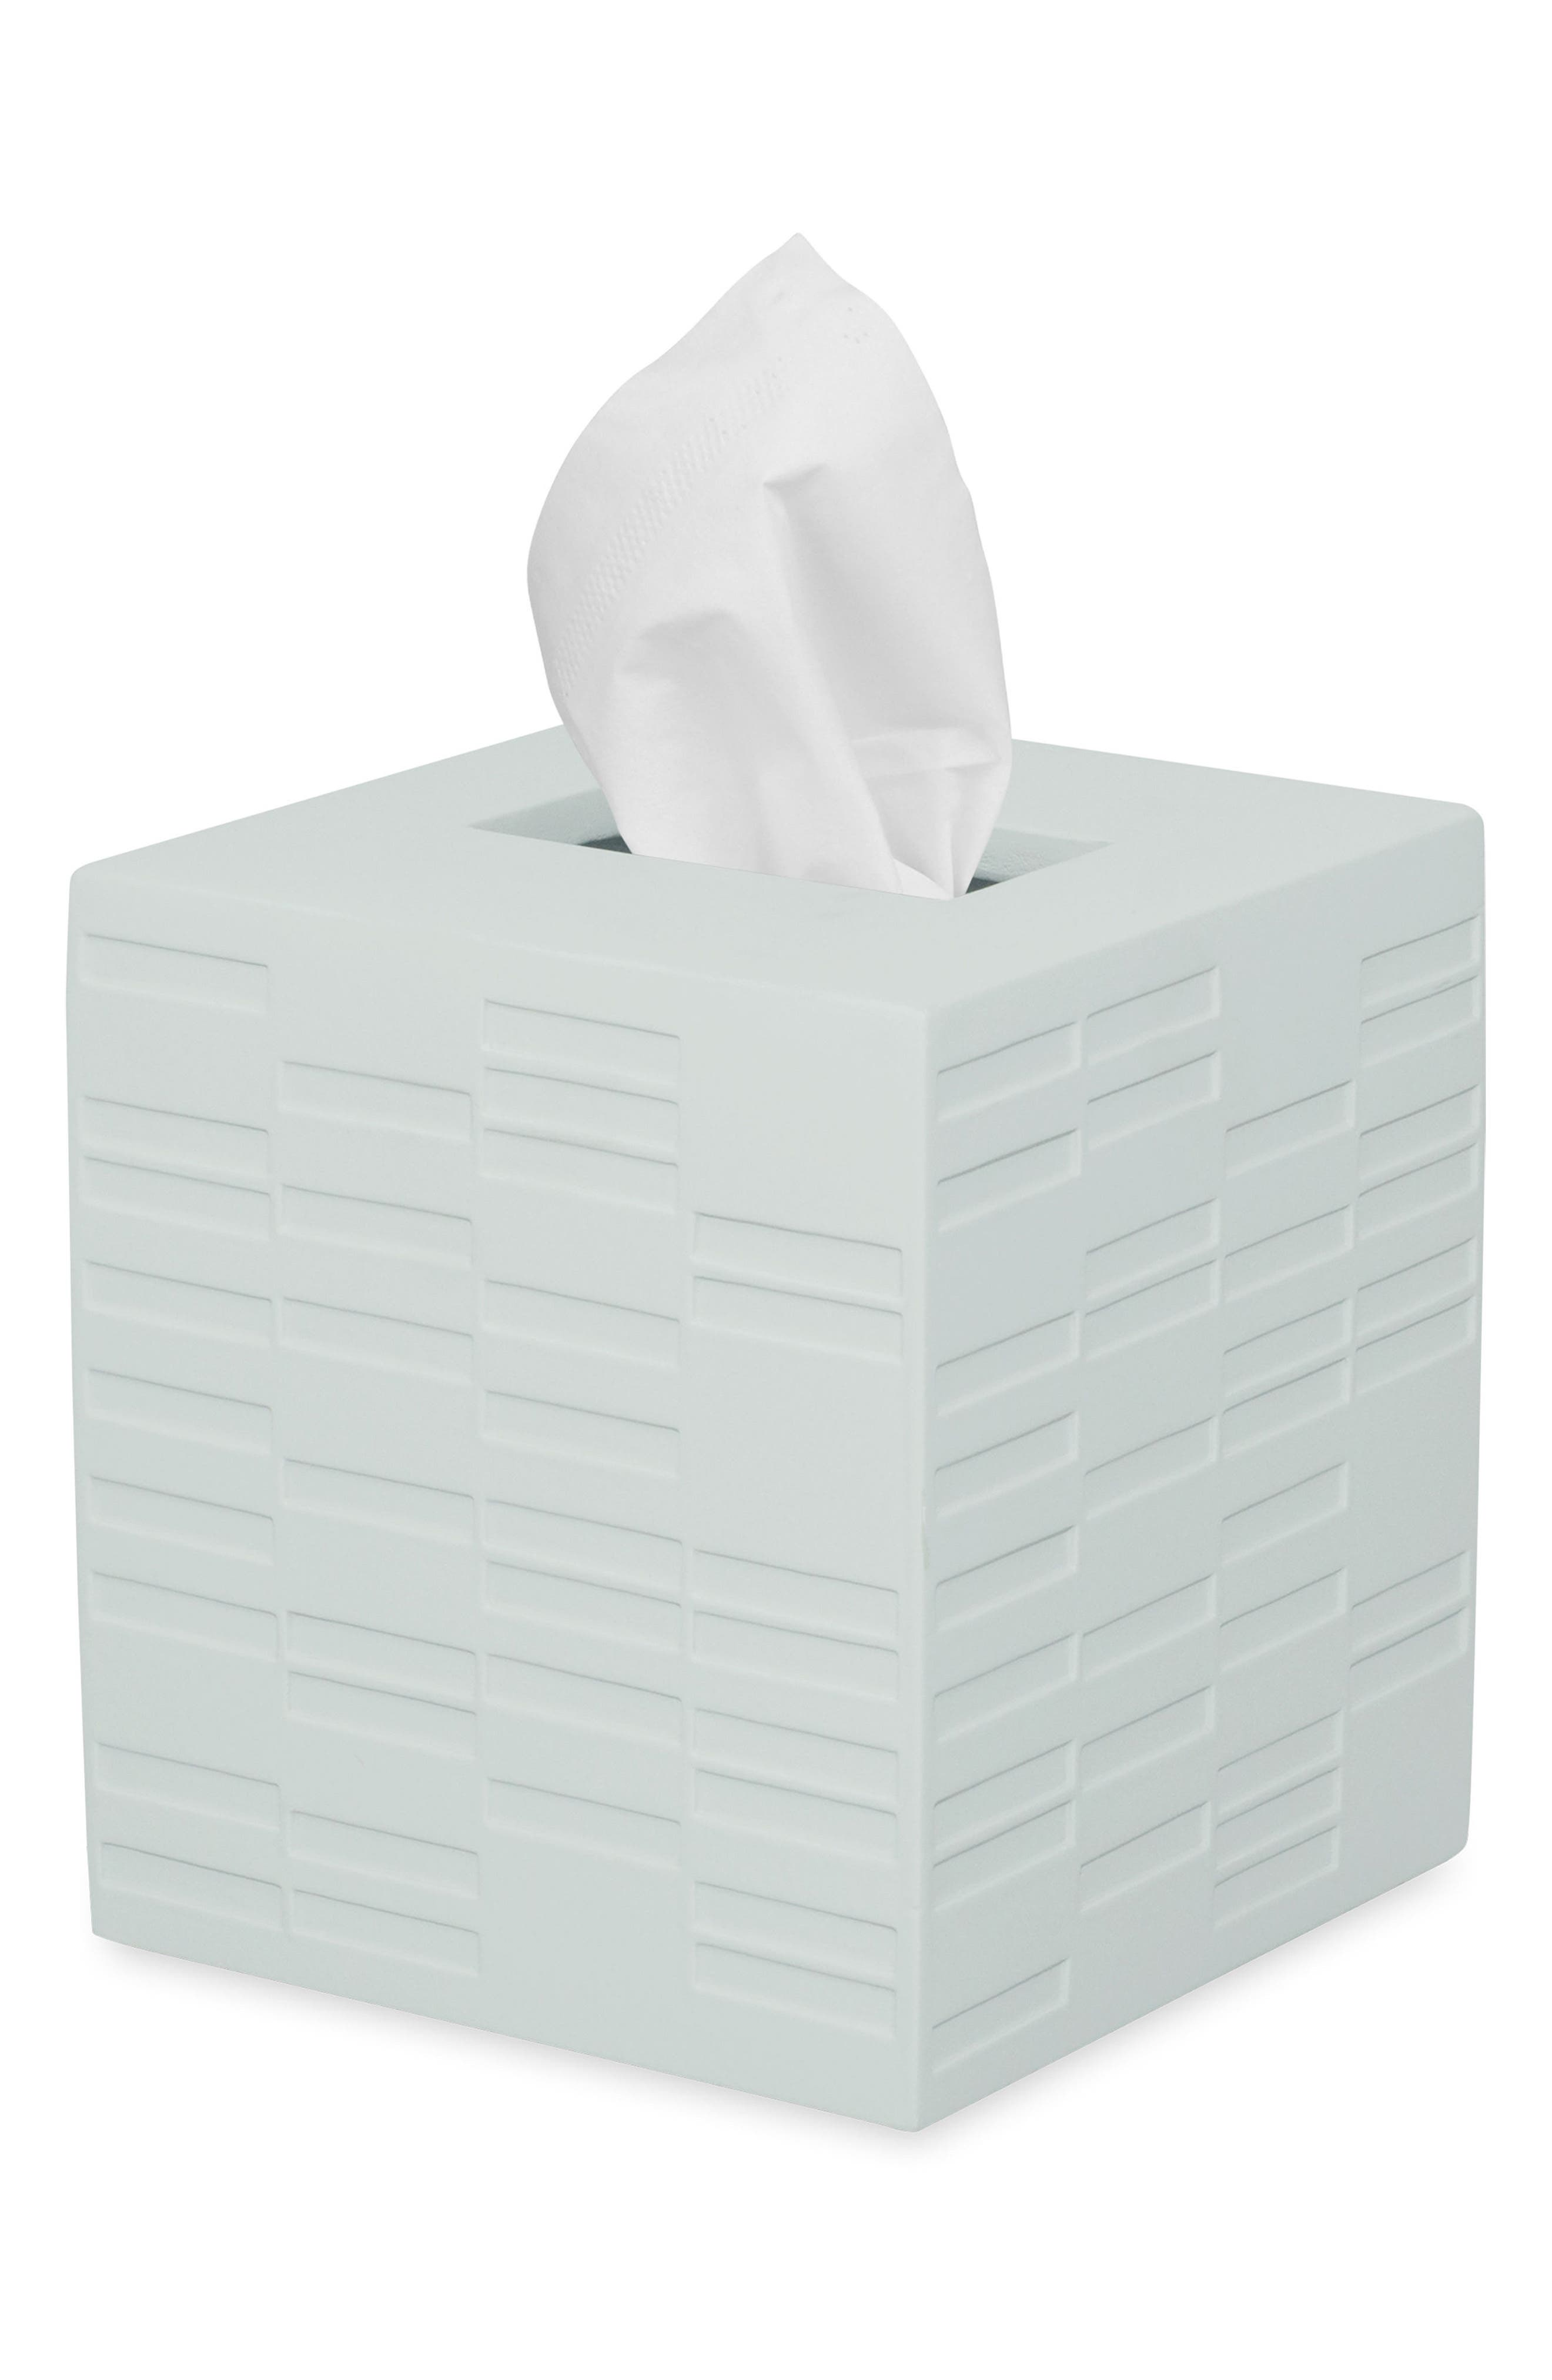 Alternate Image 1 Selected - DKNY High Rise Tissue Box Cover